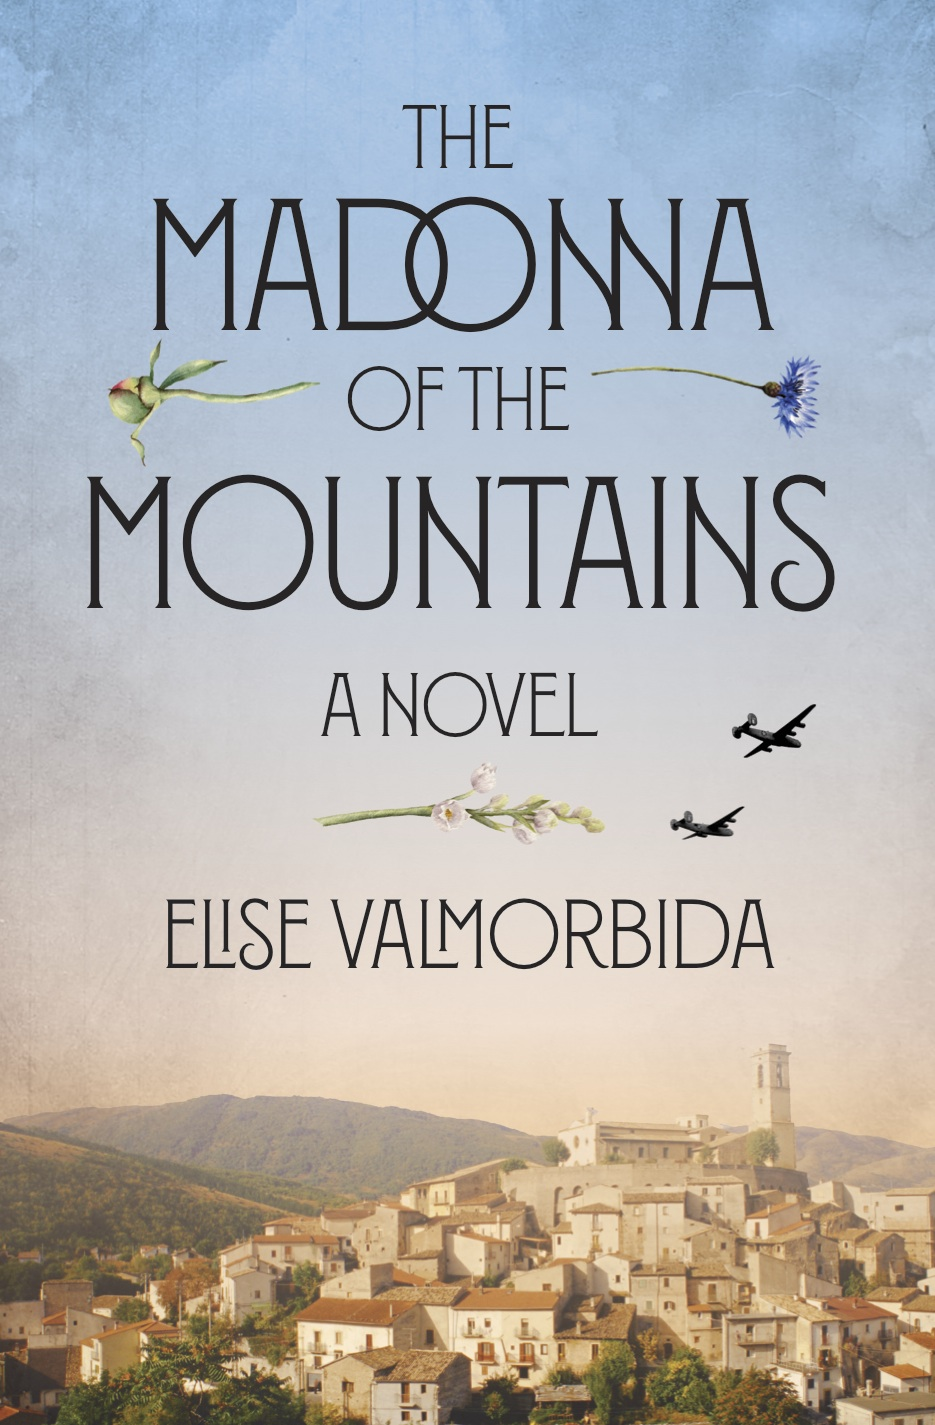 MADONNA OF THE MOUNTAINS by Elise Valmorbida